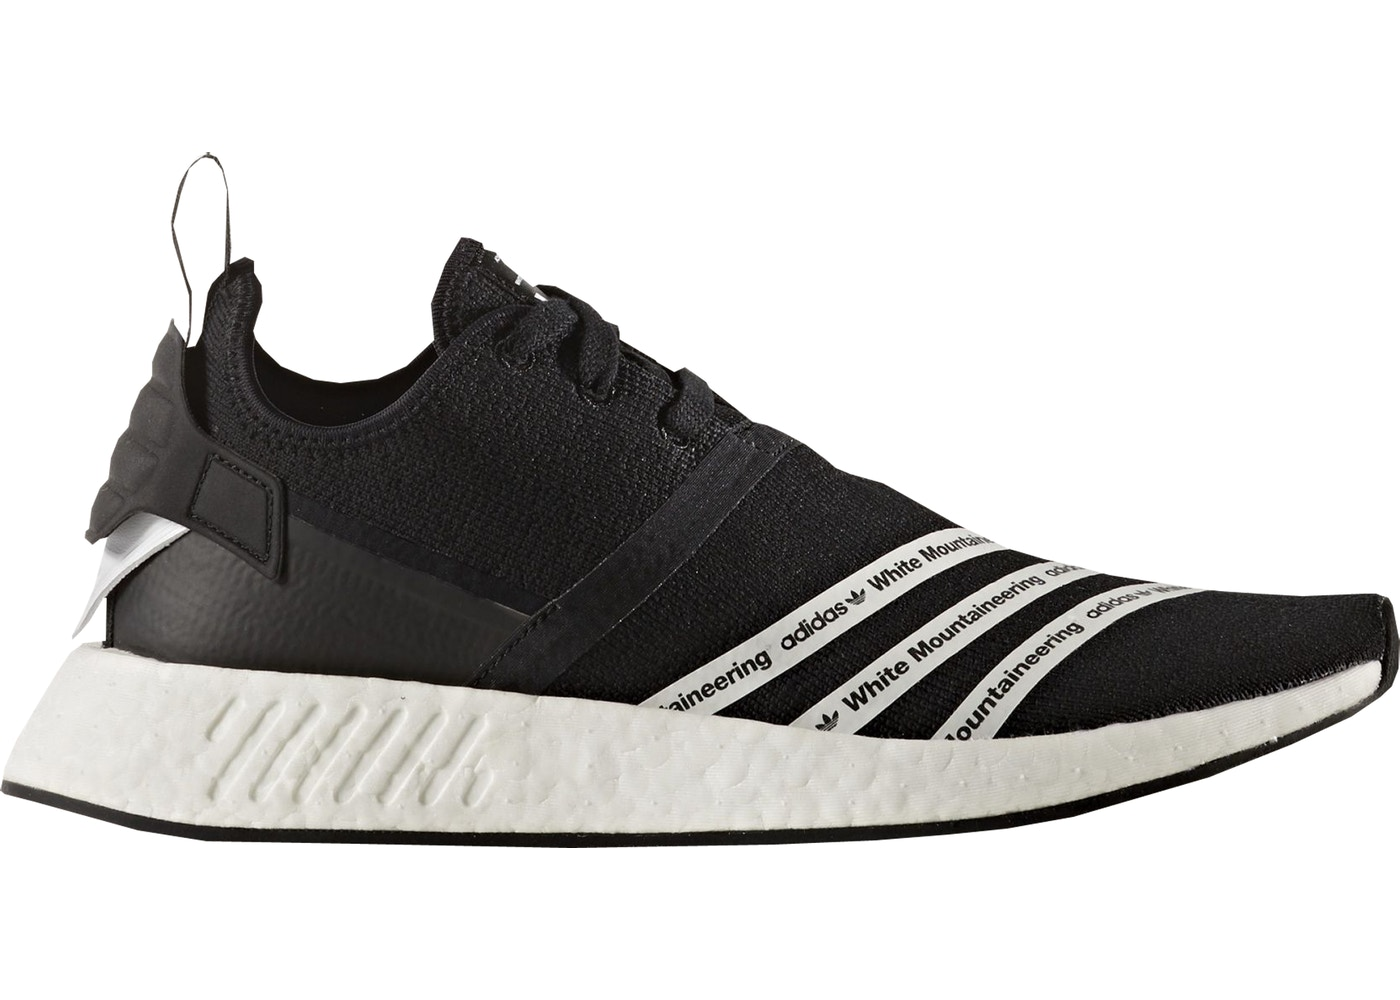 c629ce04e79f5 adidas NMD R2 White Mountaineering Black - BB2978